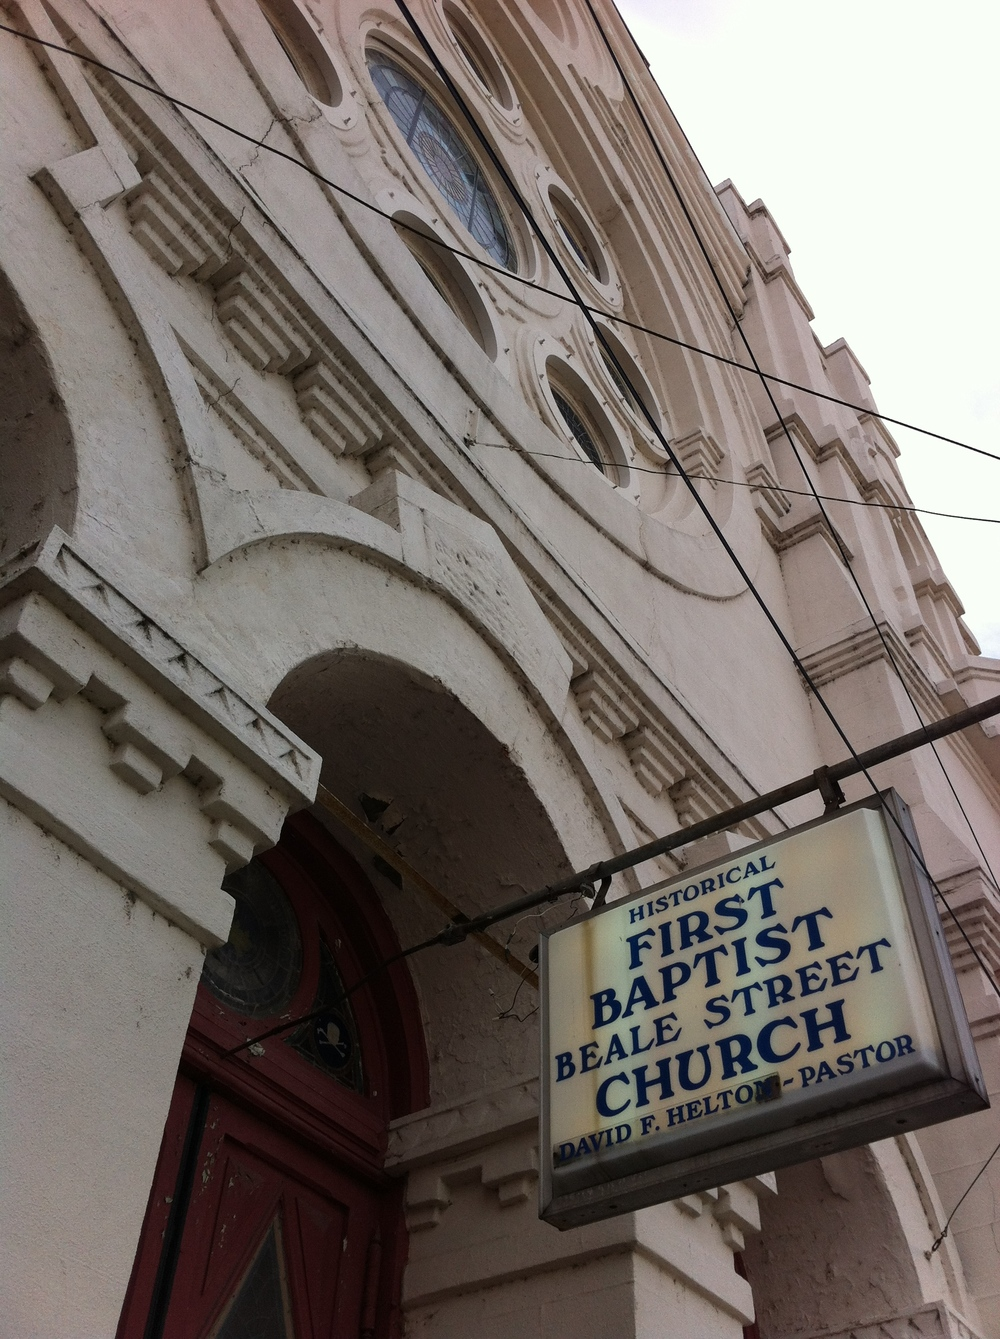 FirstBaptistChurch